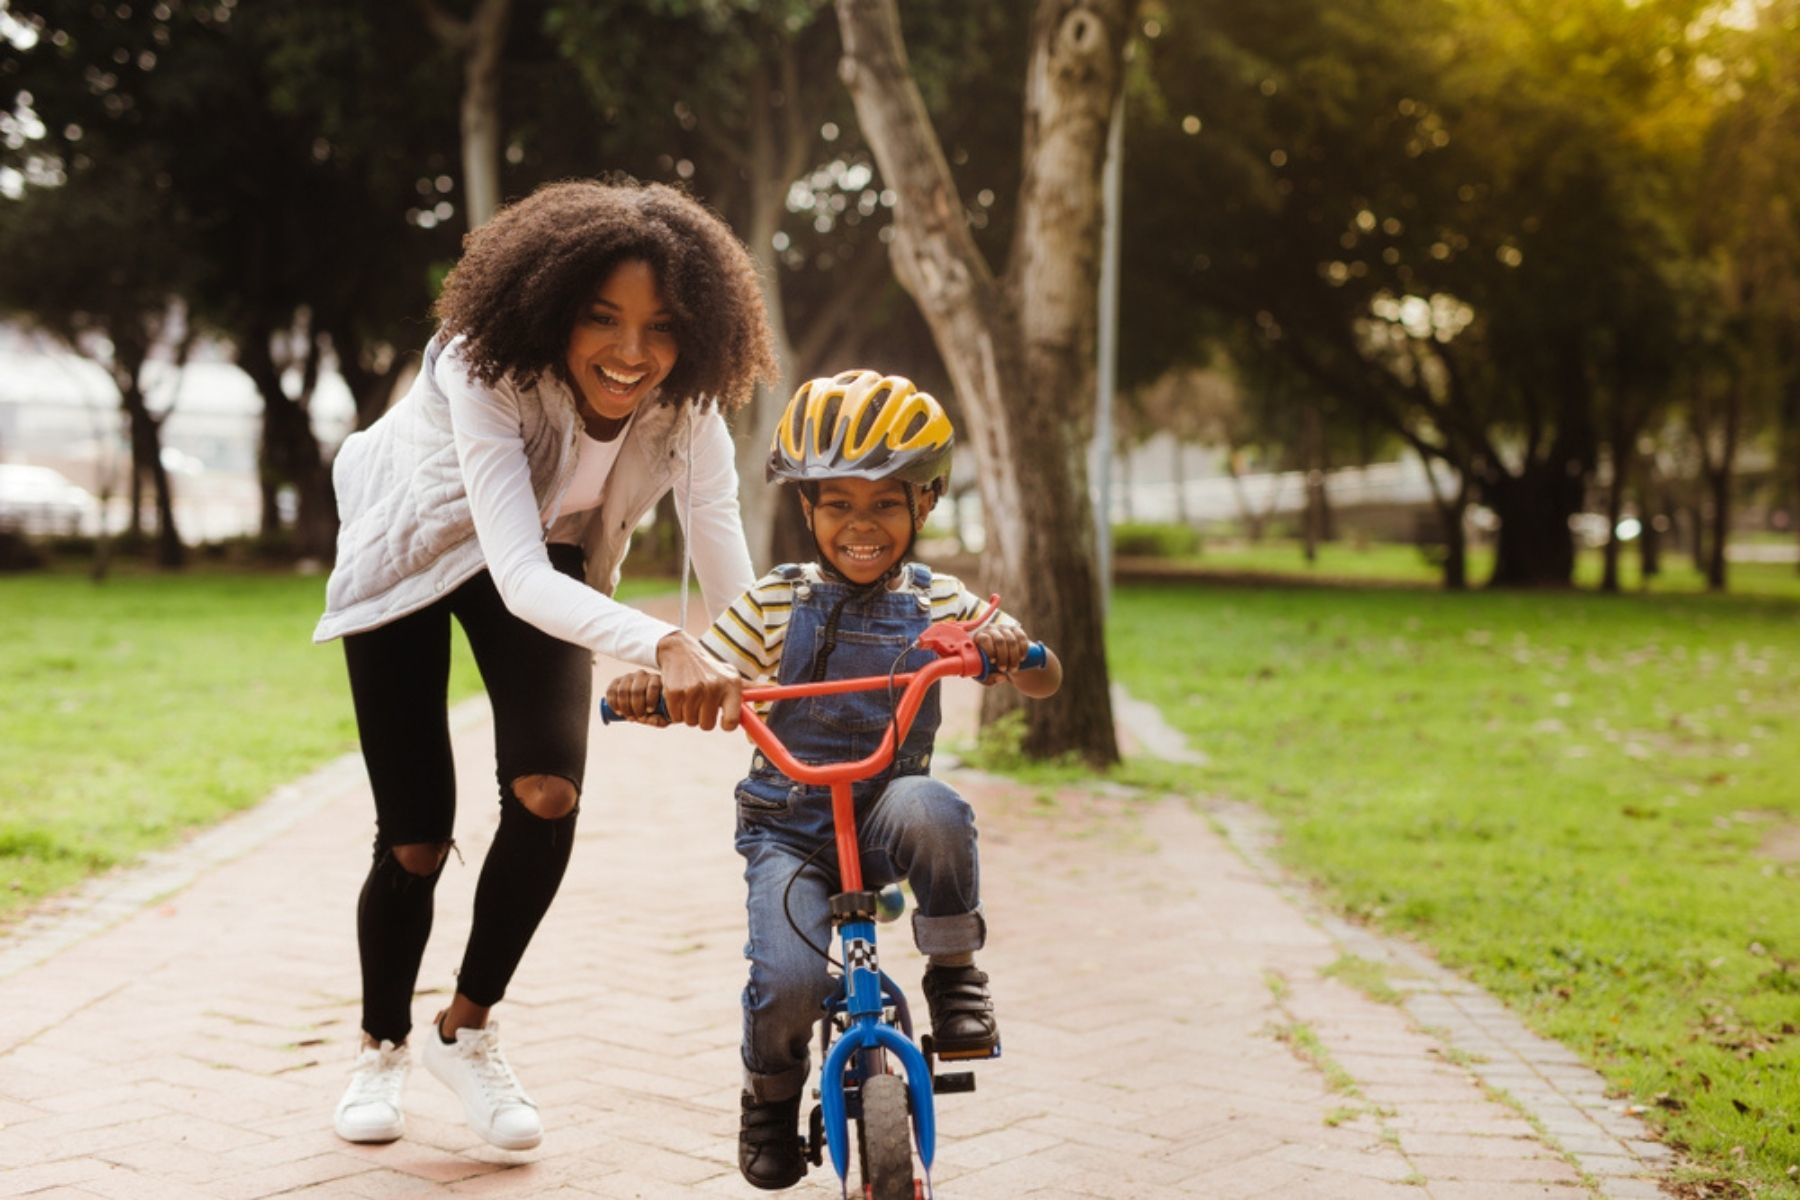 Image is of woman and child with a bike